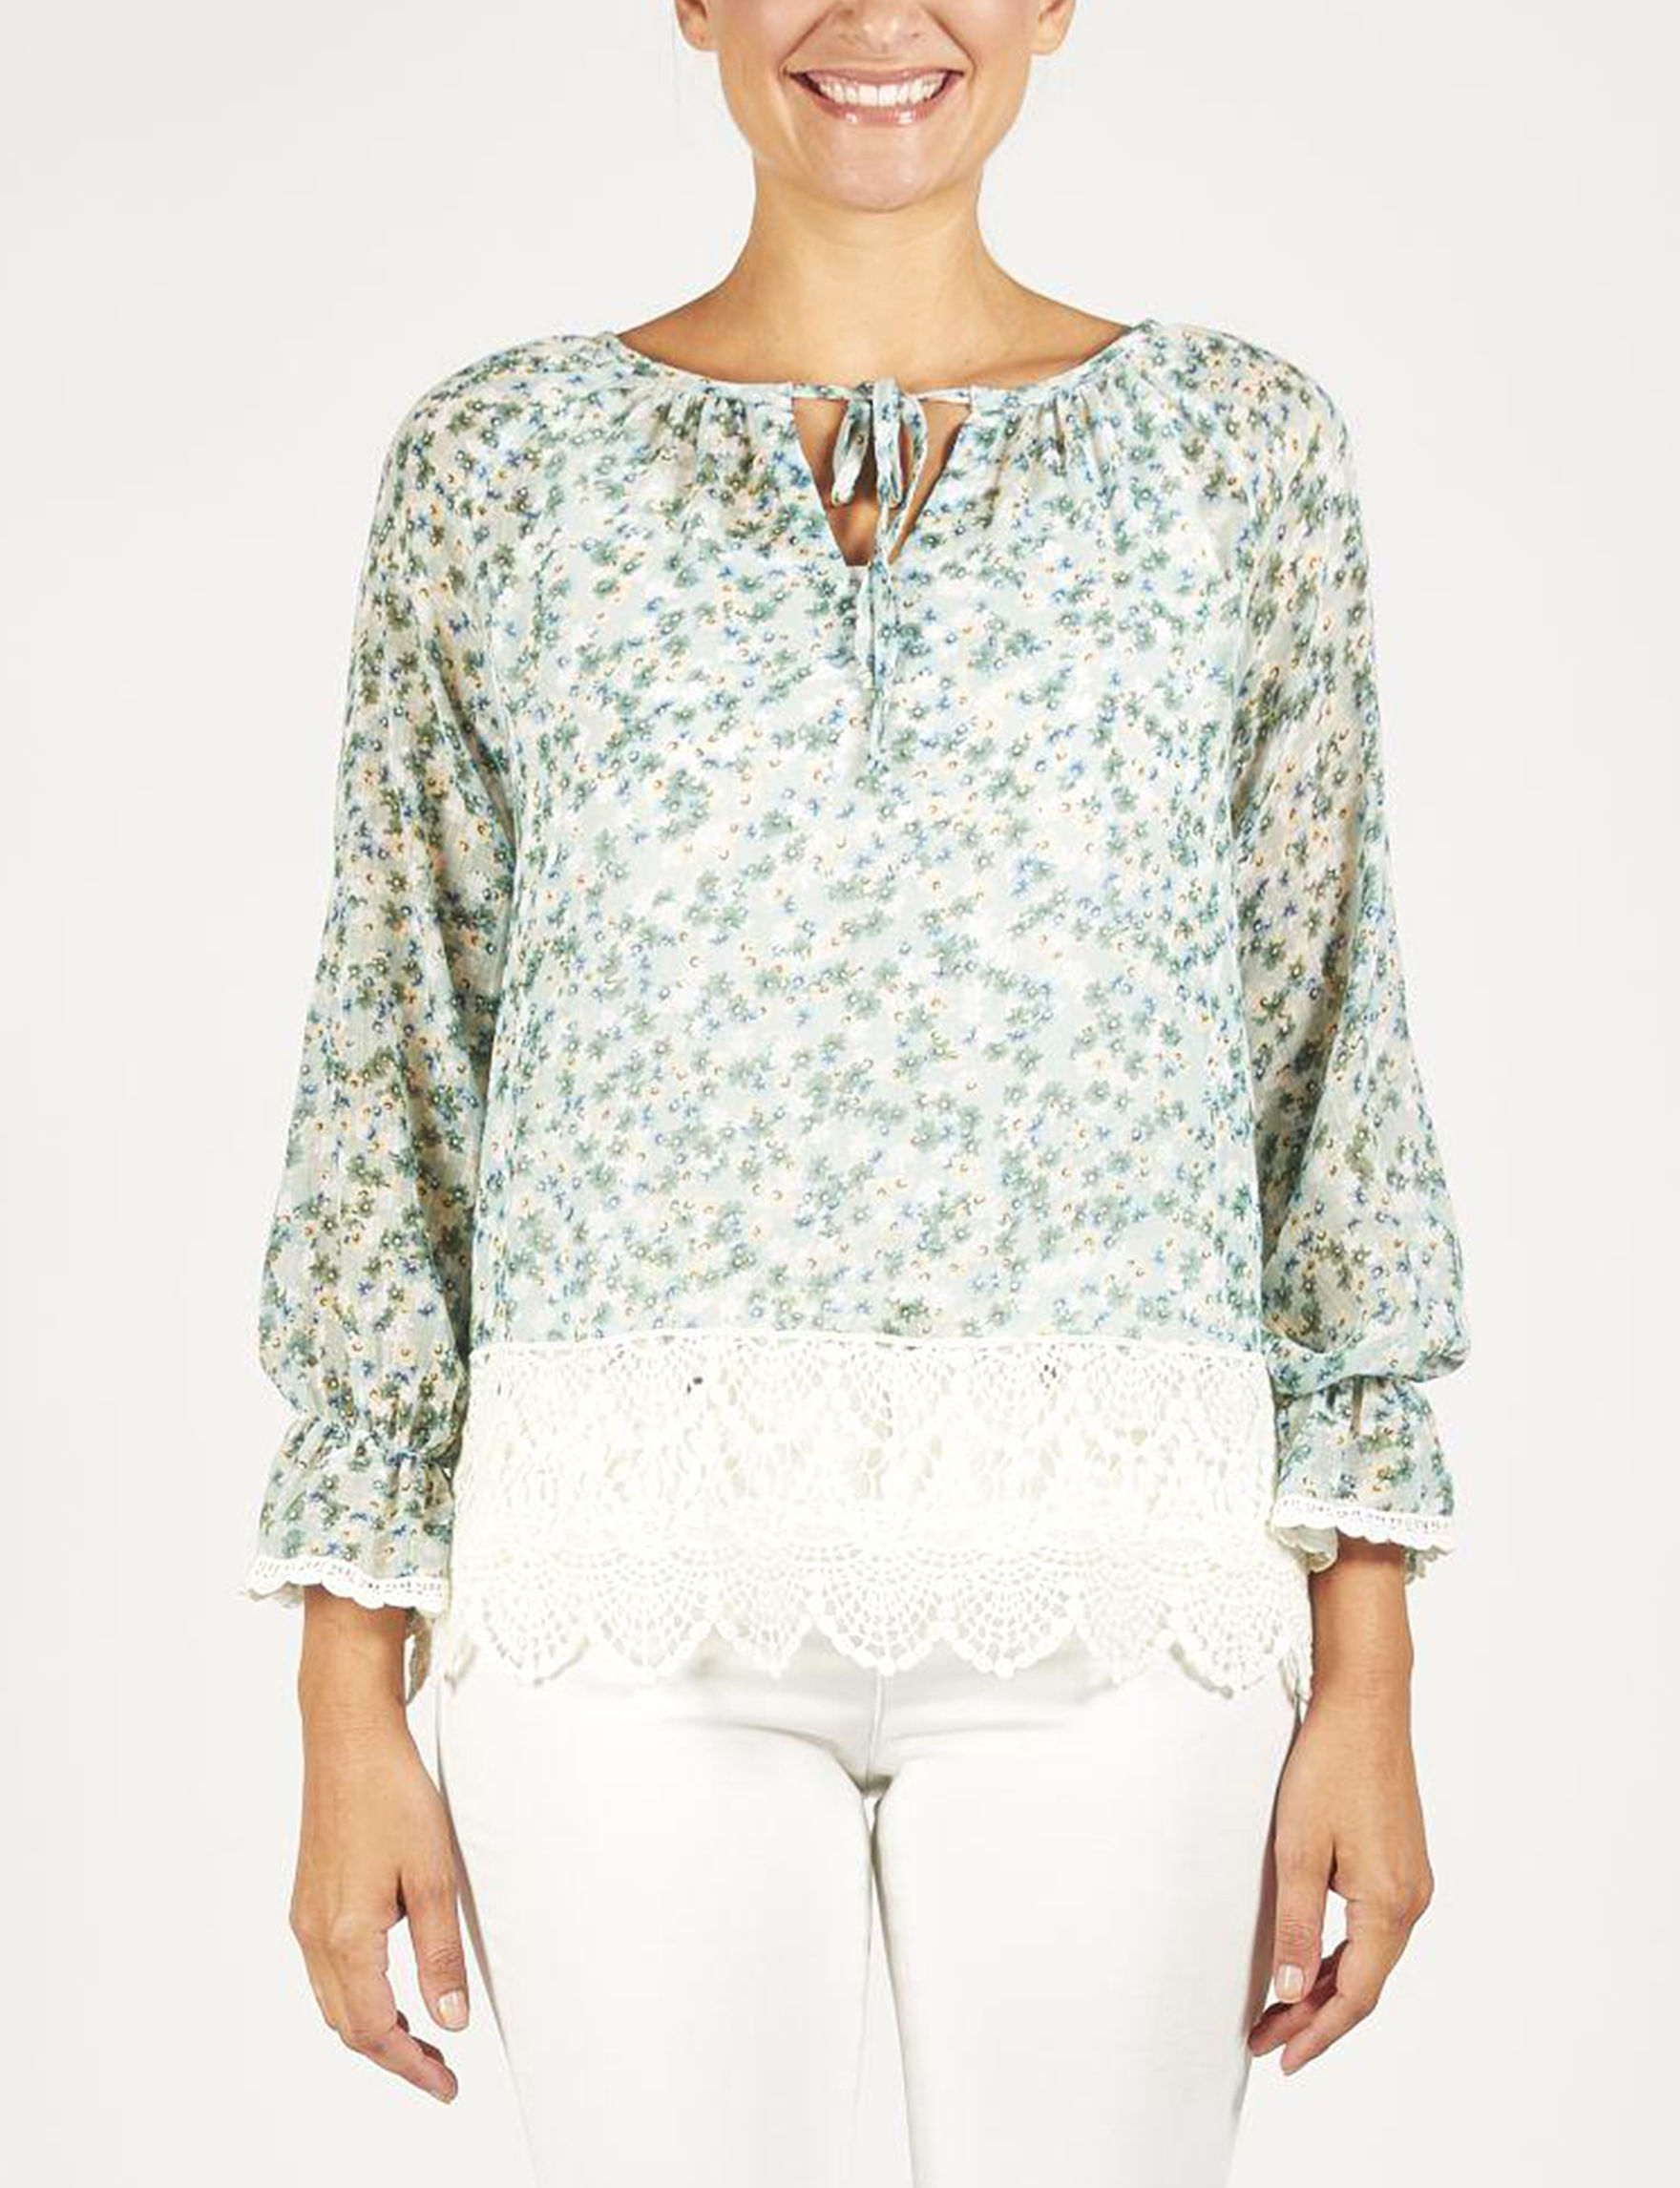 Skyes The Limit Mint Shirts & Blouses